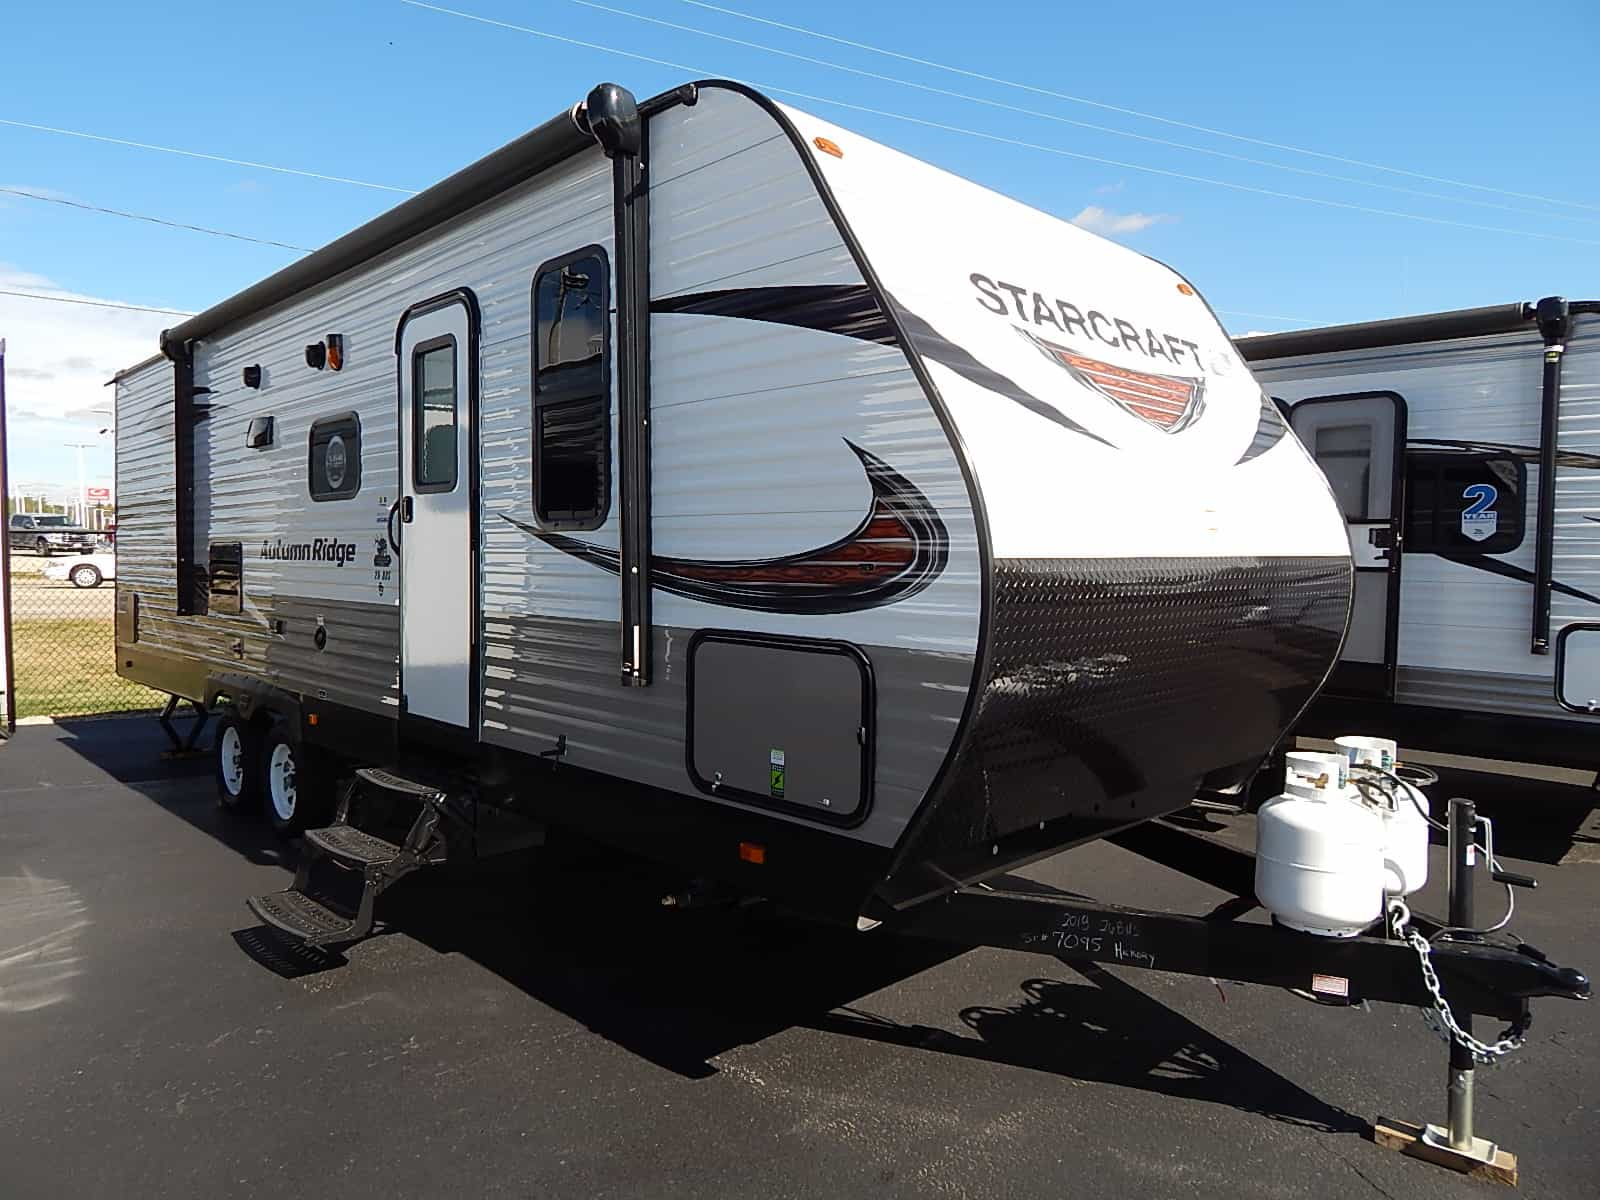 NEW 2018 STARCRAFT AUTUMN RIDGE OUTFITTR 26BHS - Rick's RV Center